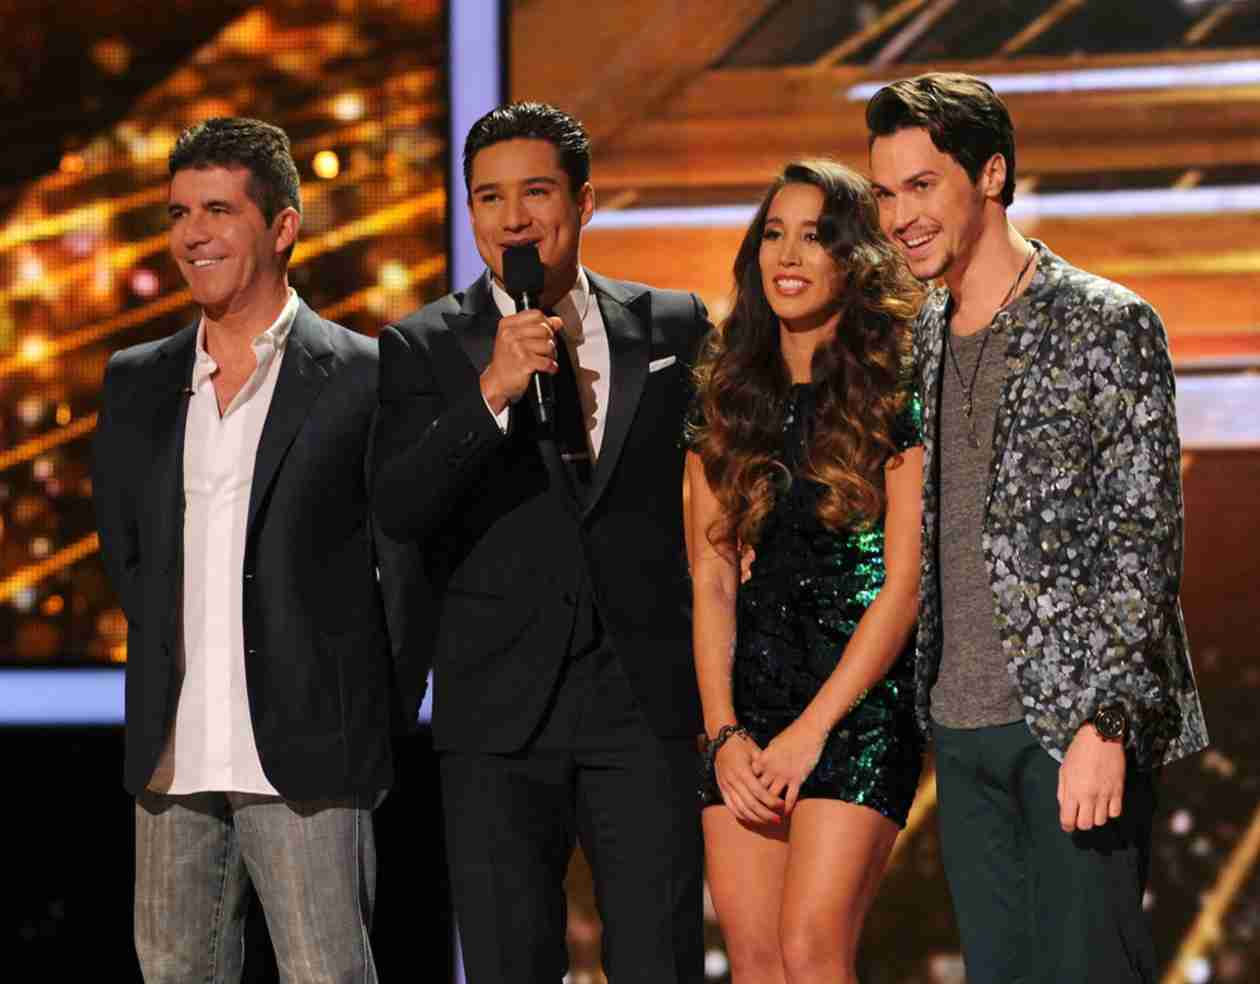 Alex & Sierra Win Season 3! Fellow X Factor Stars React!